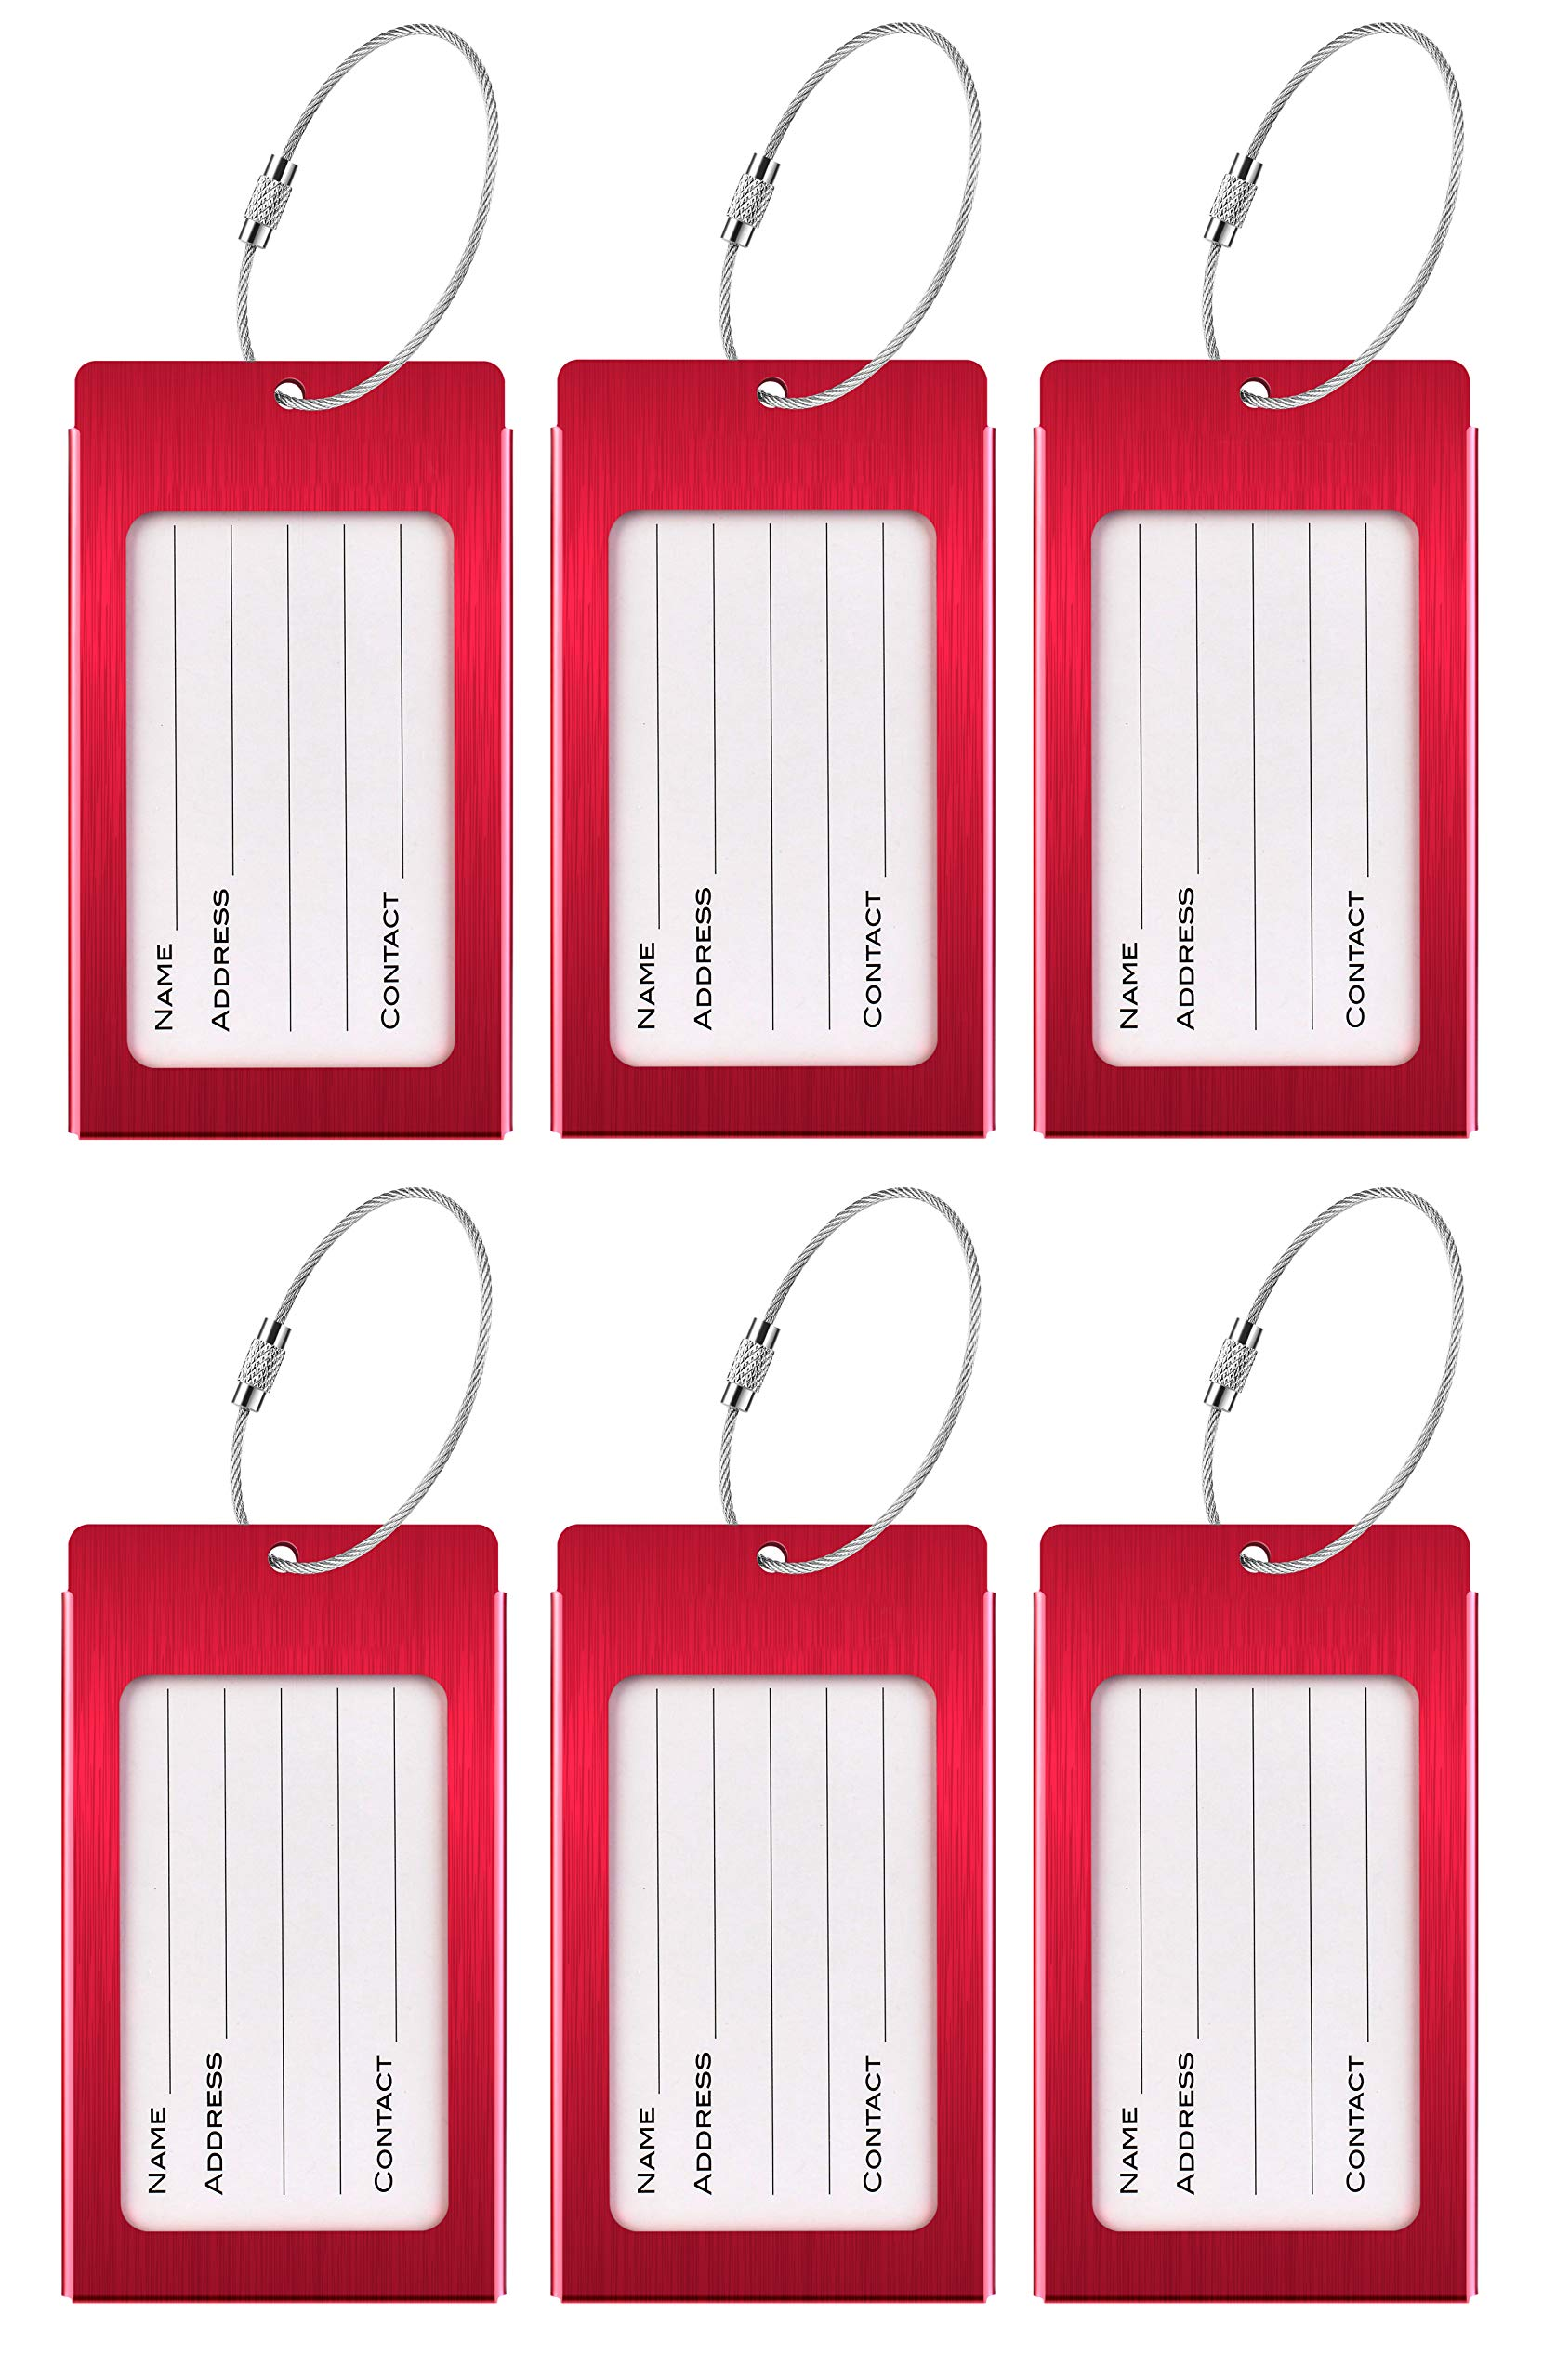 Luggage Tags, LLFSD Metal Suitcase Tags Travel Bag ID Identifier Luggage Tag (Red 6-Pack)